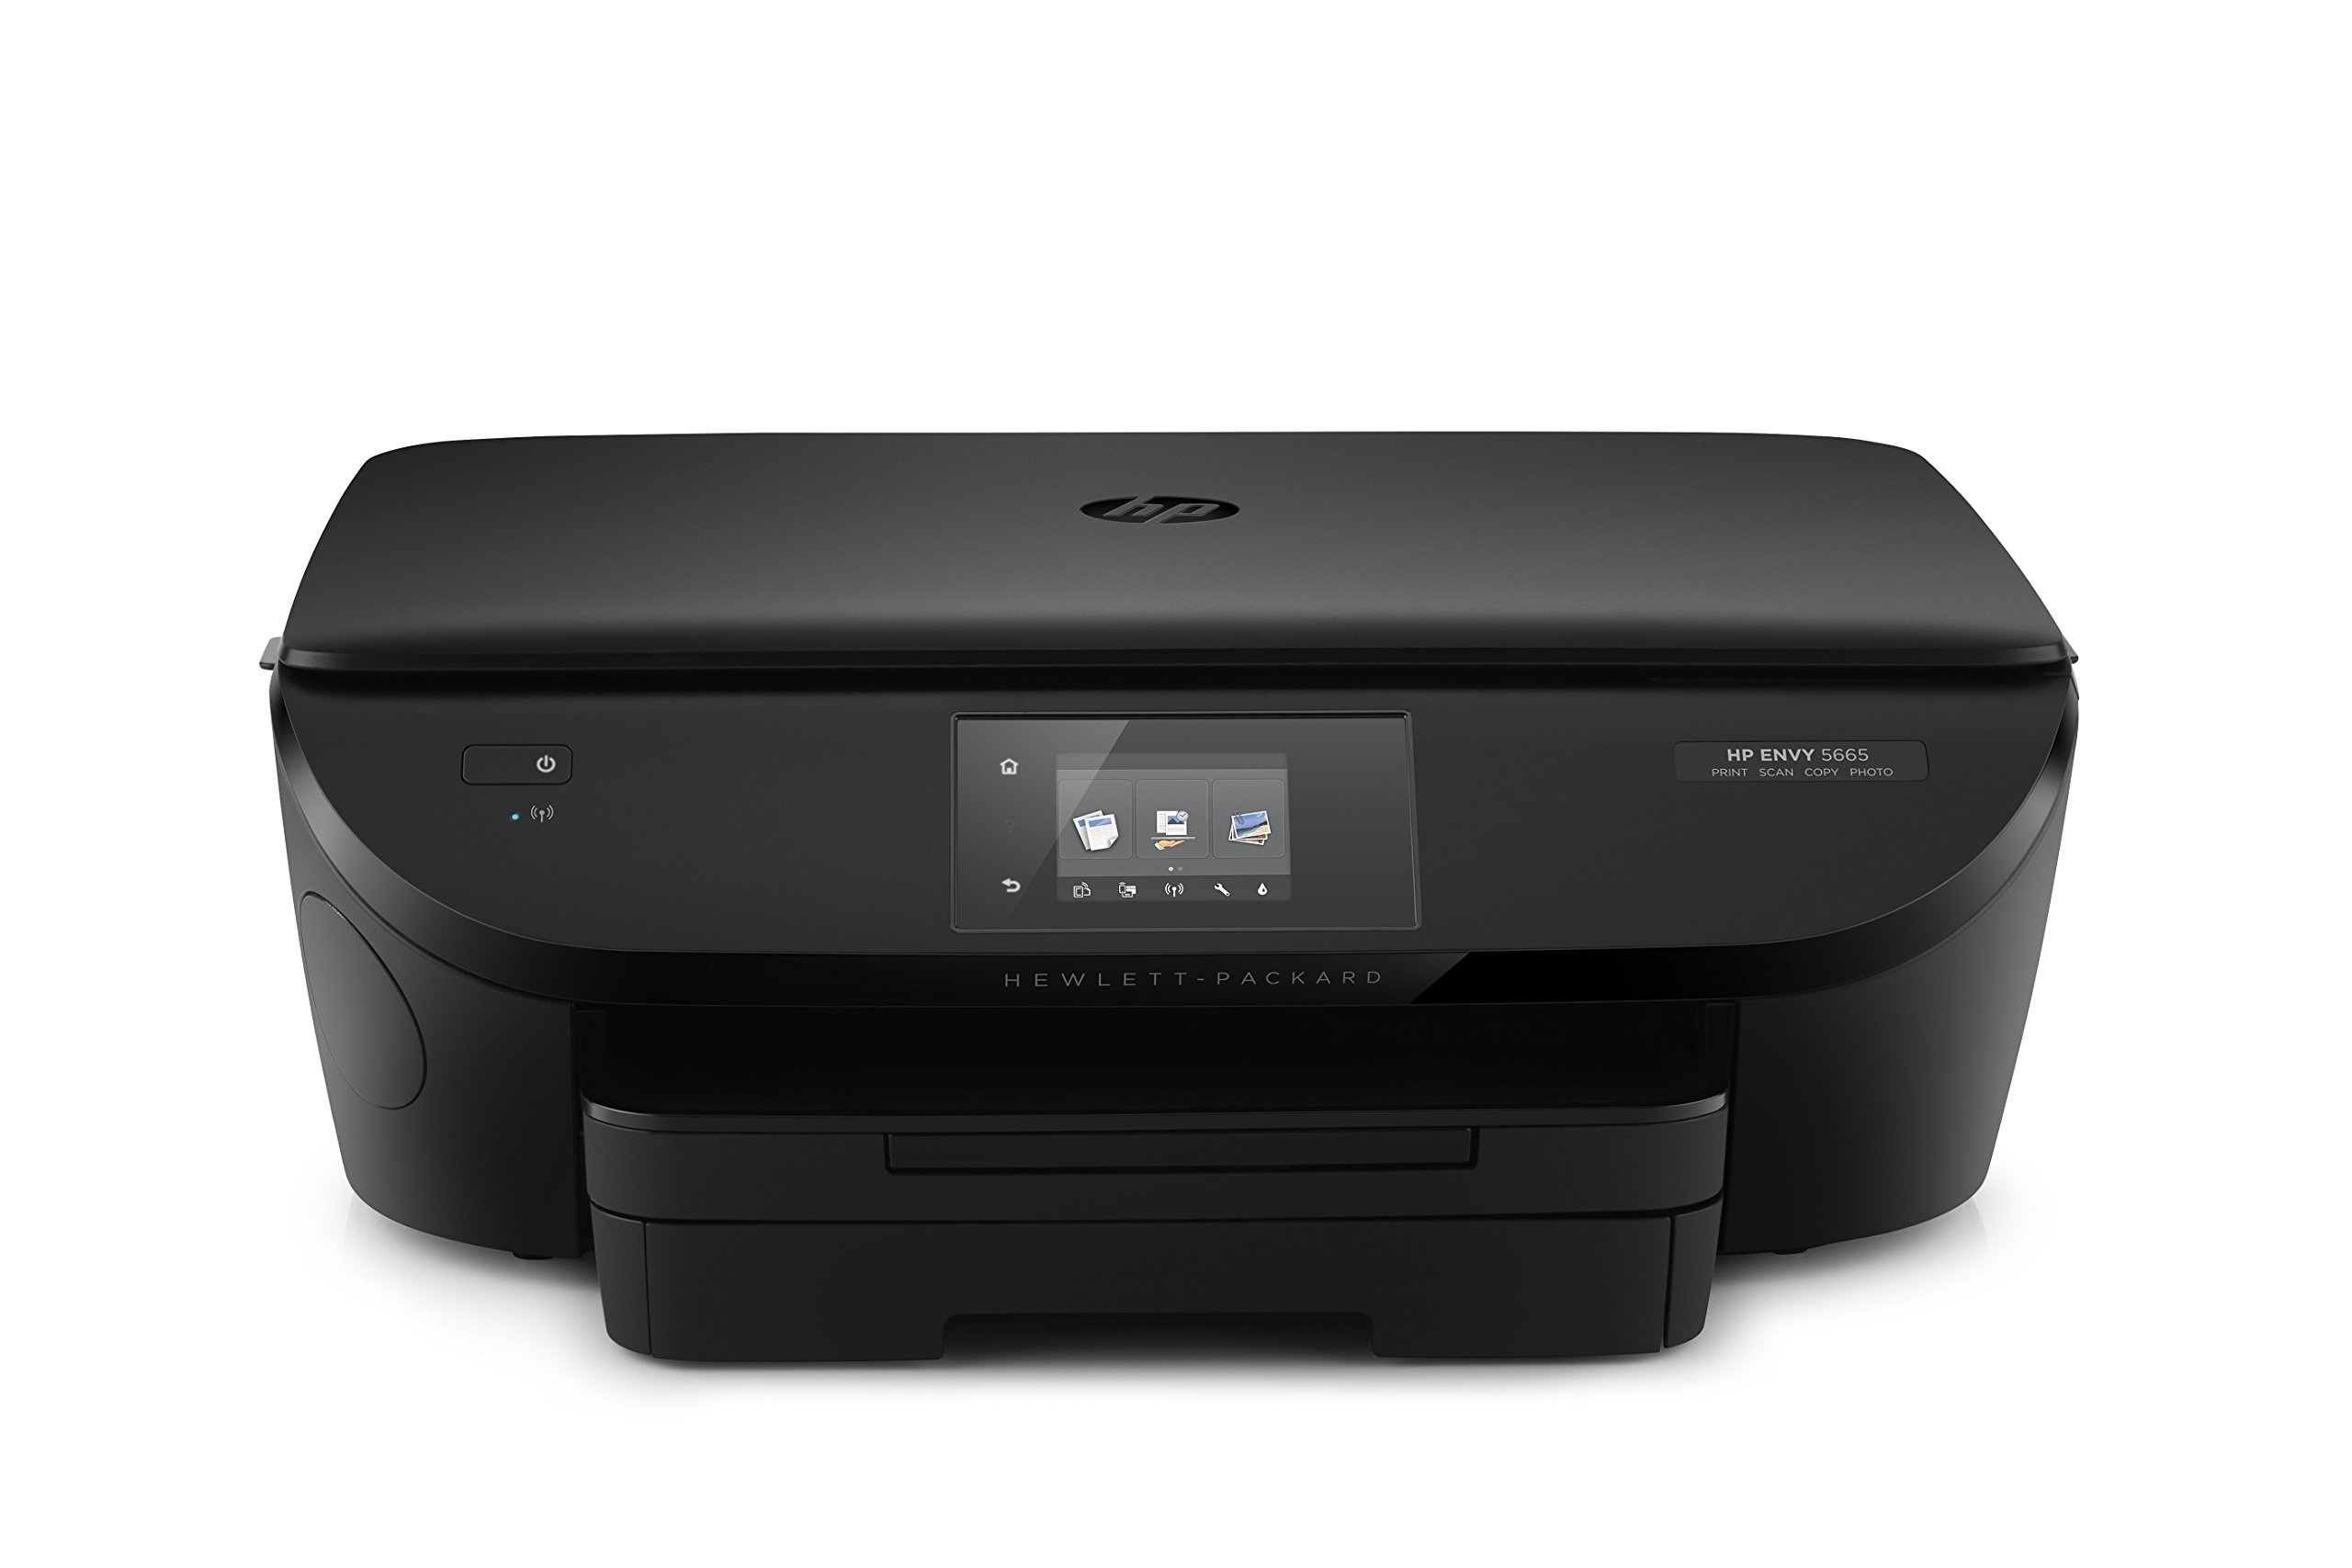 HP Envy 5660 Wireless All-in-One Photo Printer with Mobile Printing, Instant Ink Ready (F8B04AR) (Renewed) by HP (Image #1)